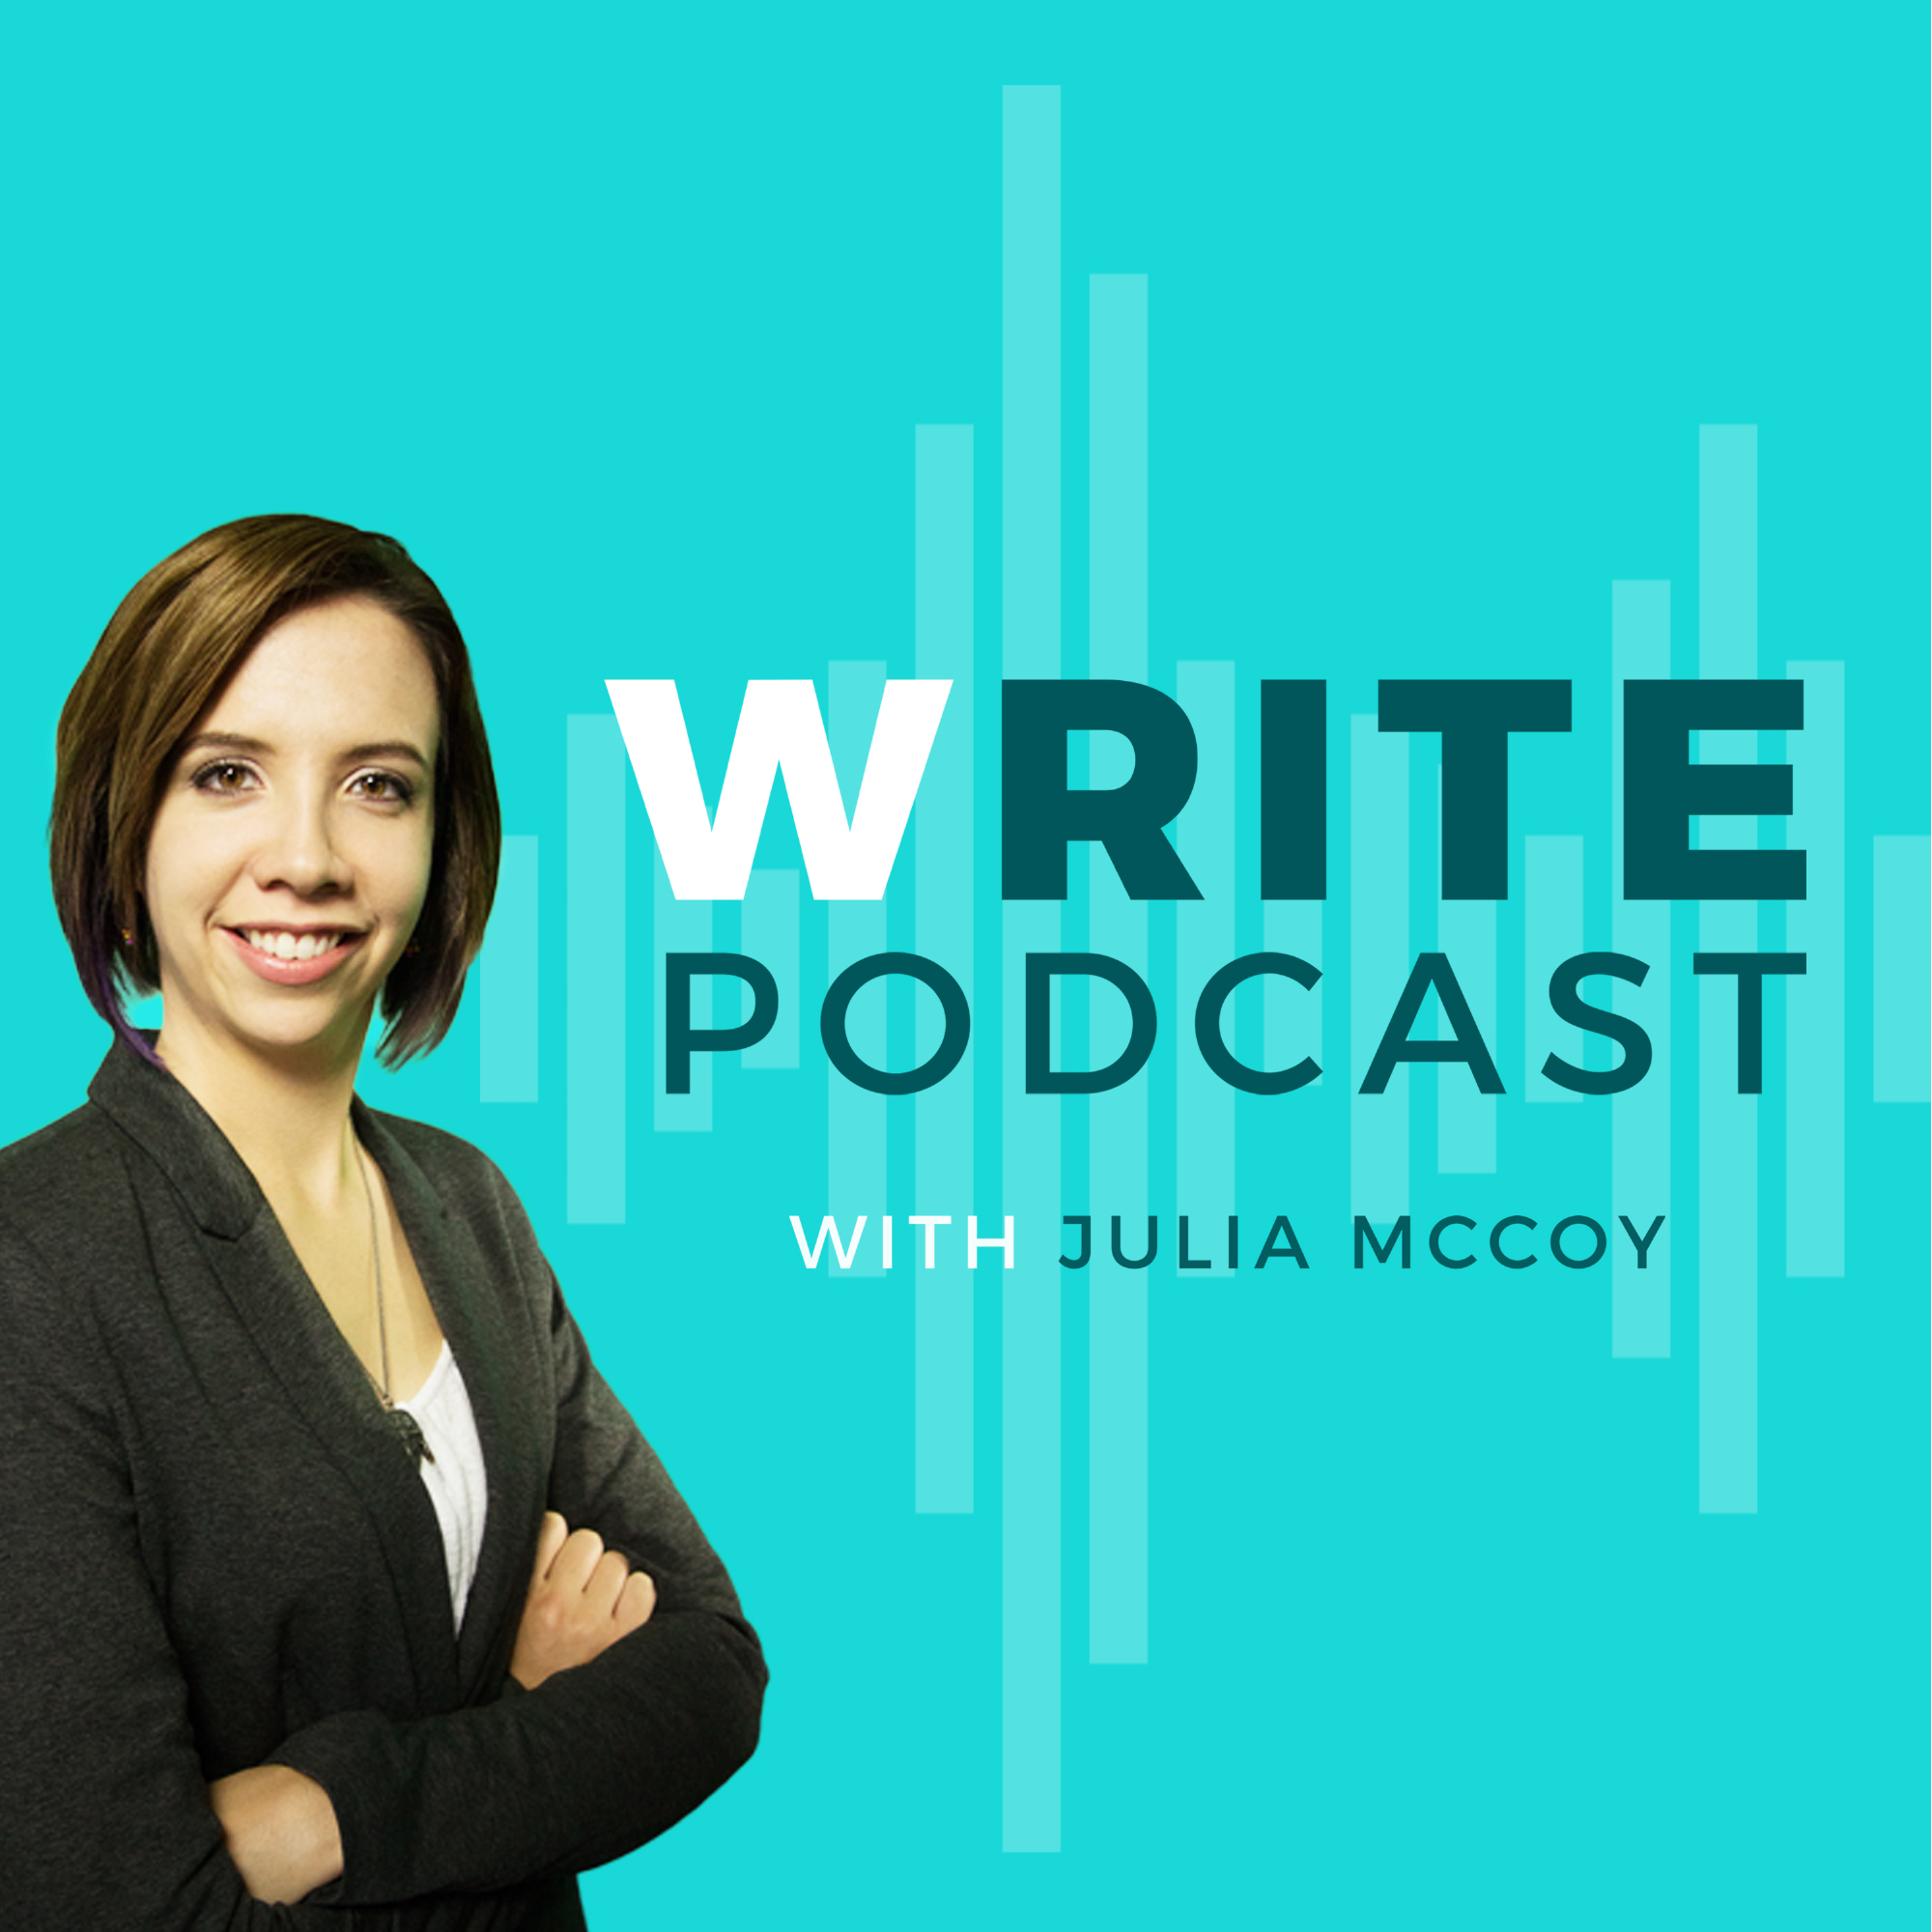 Write Podcast With Julia McCoy